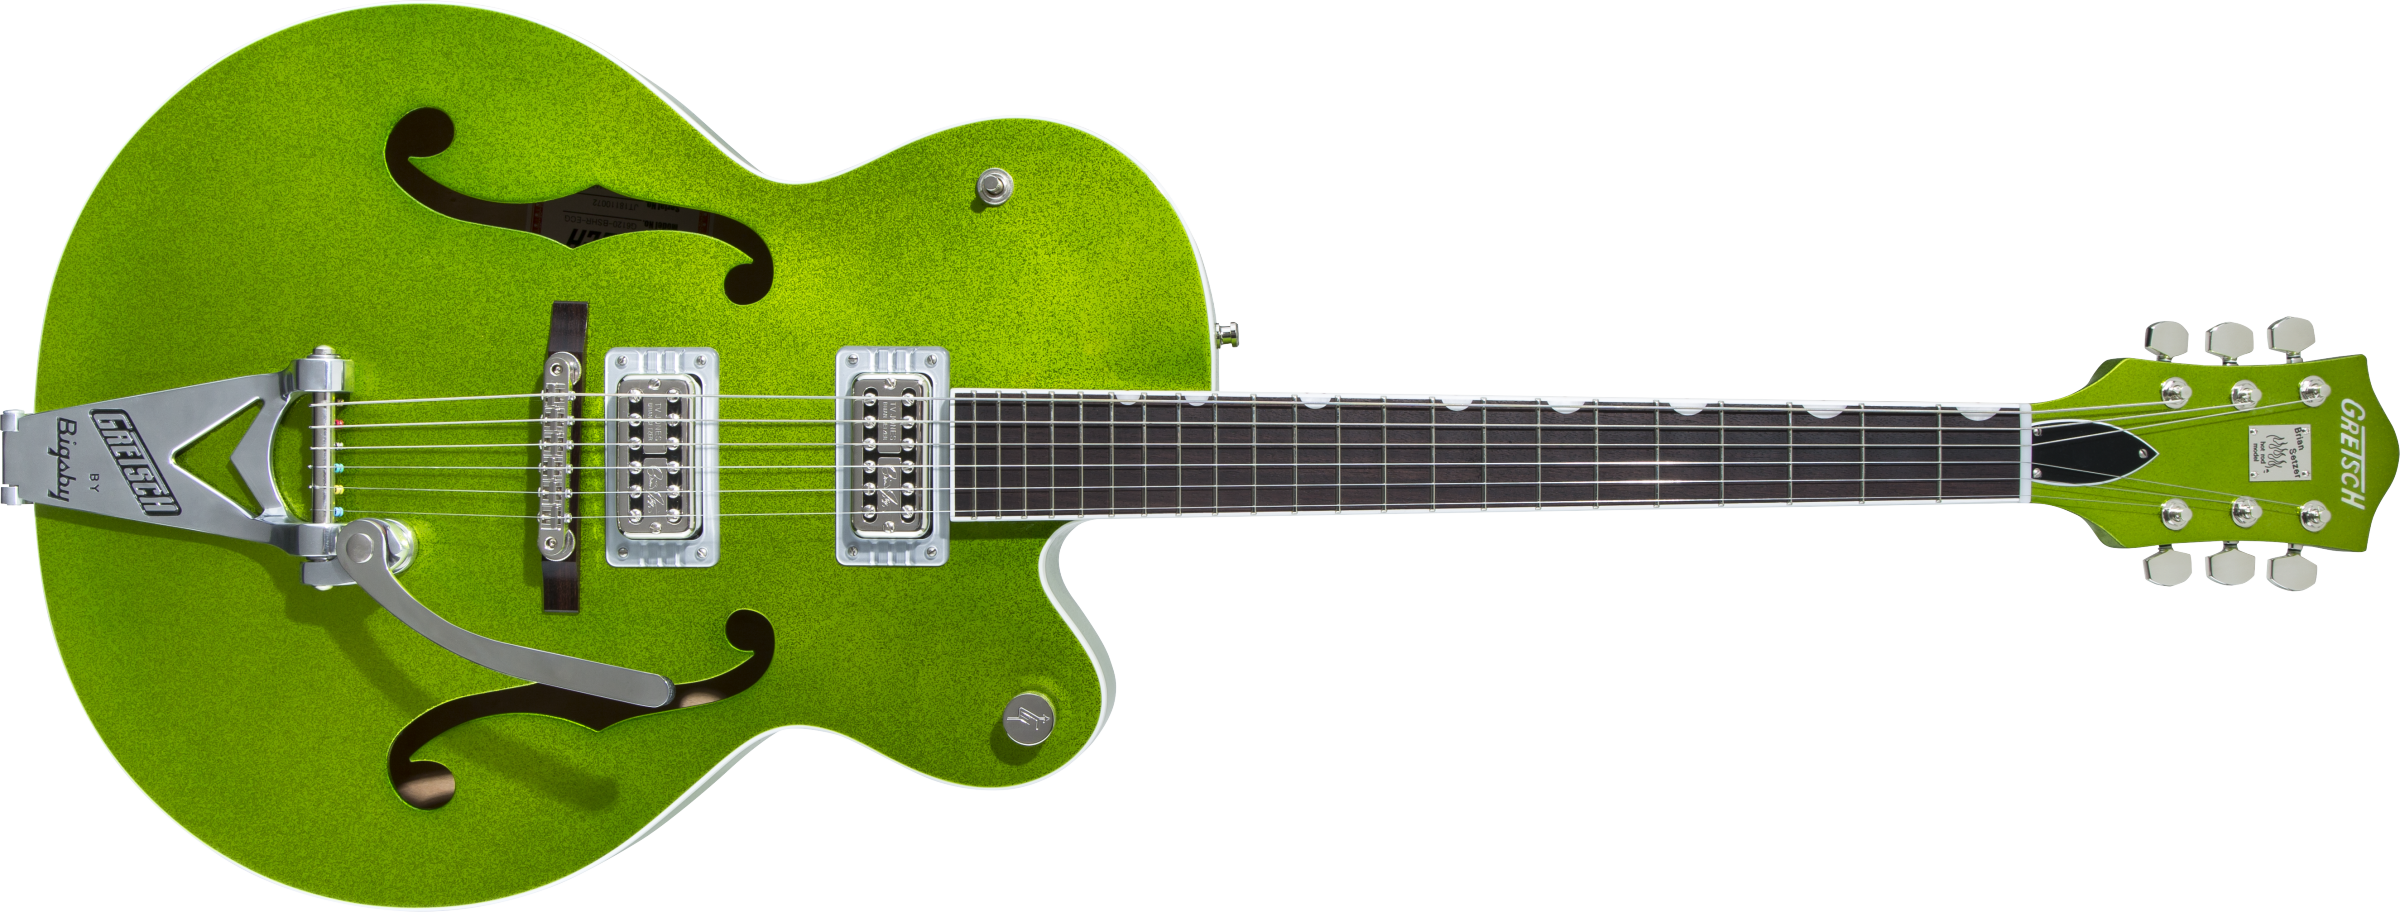 GRETSCH-G6120T-HR-Brian-Setzer-Signature-Hot-Rod-Hollow-Body-with-Bigsby-Rosewood-Fingerboard-Extreme-Coolant-Green-Sparkle-sku-571004087